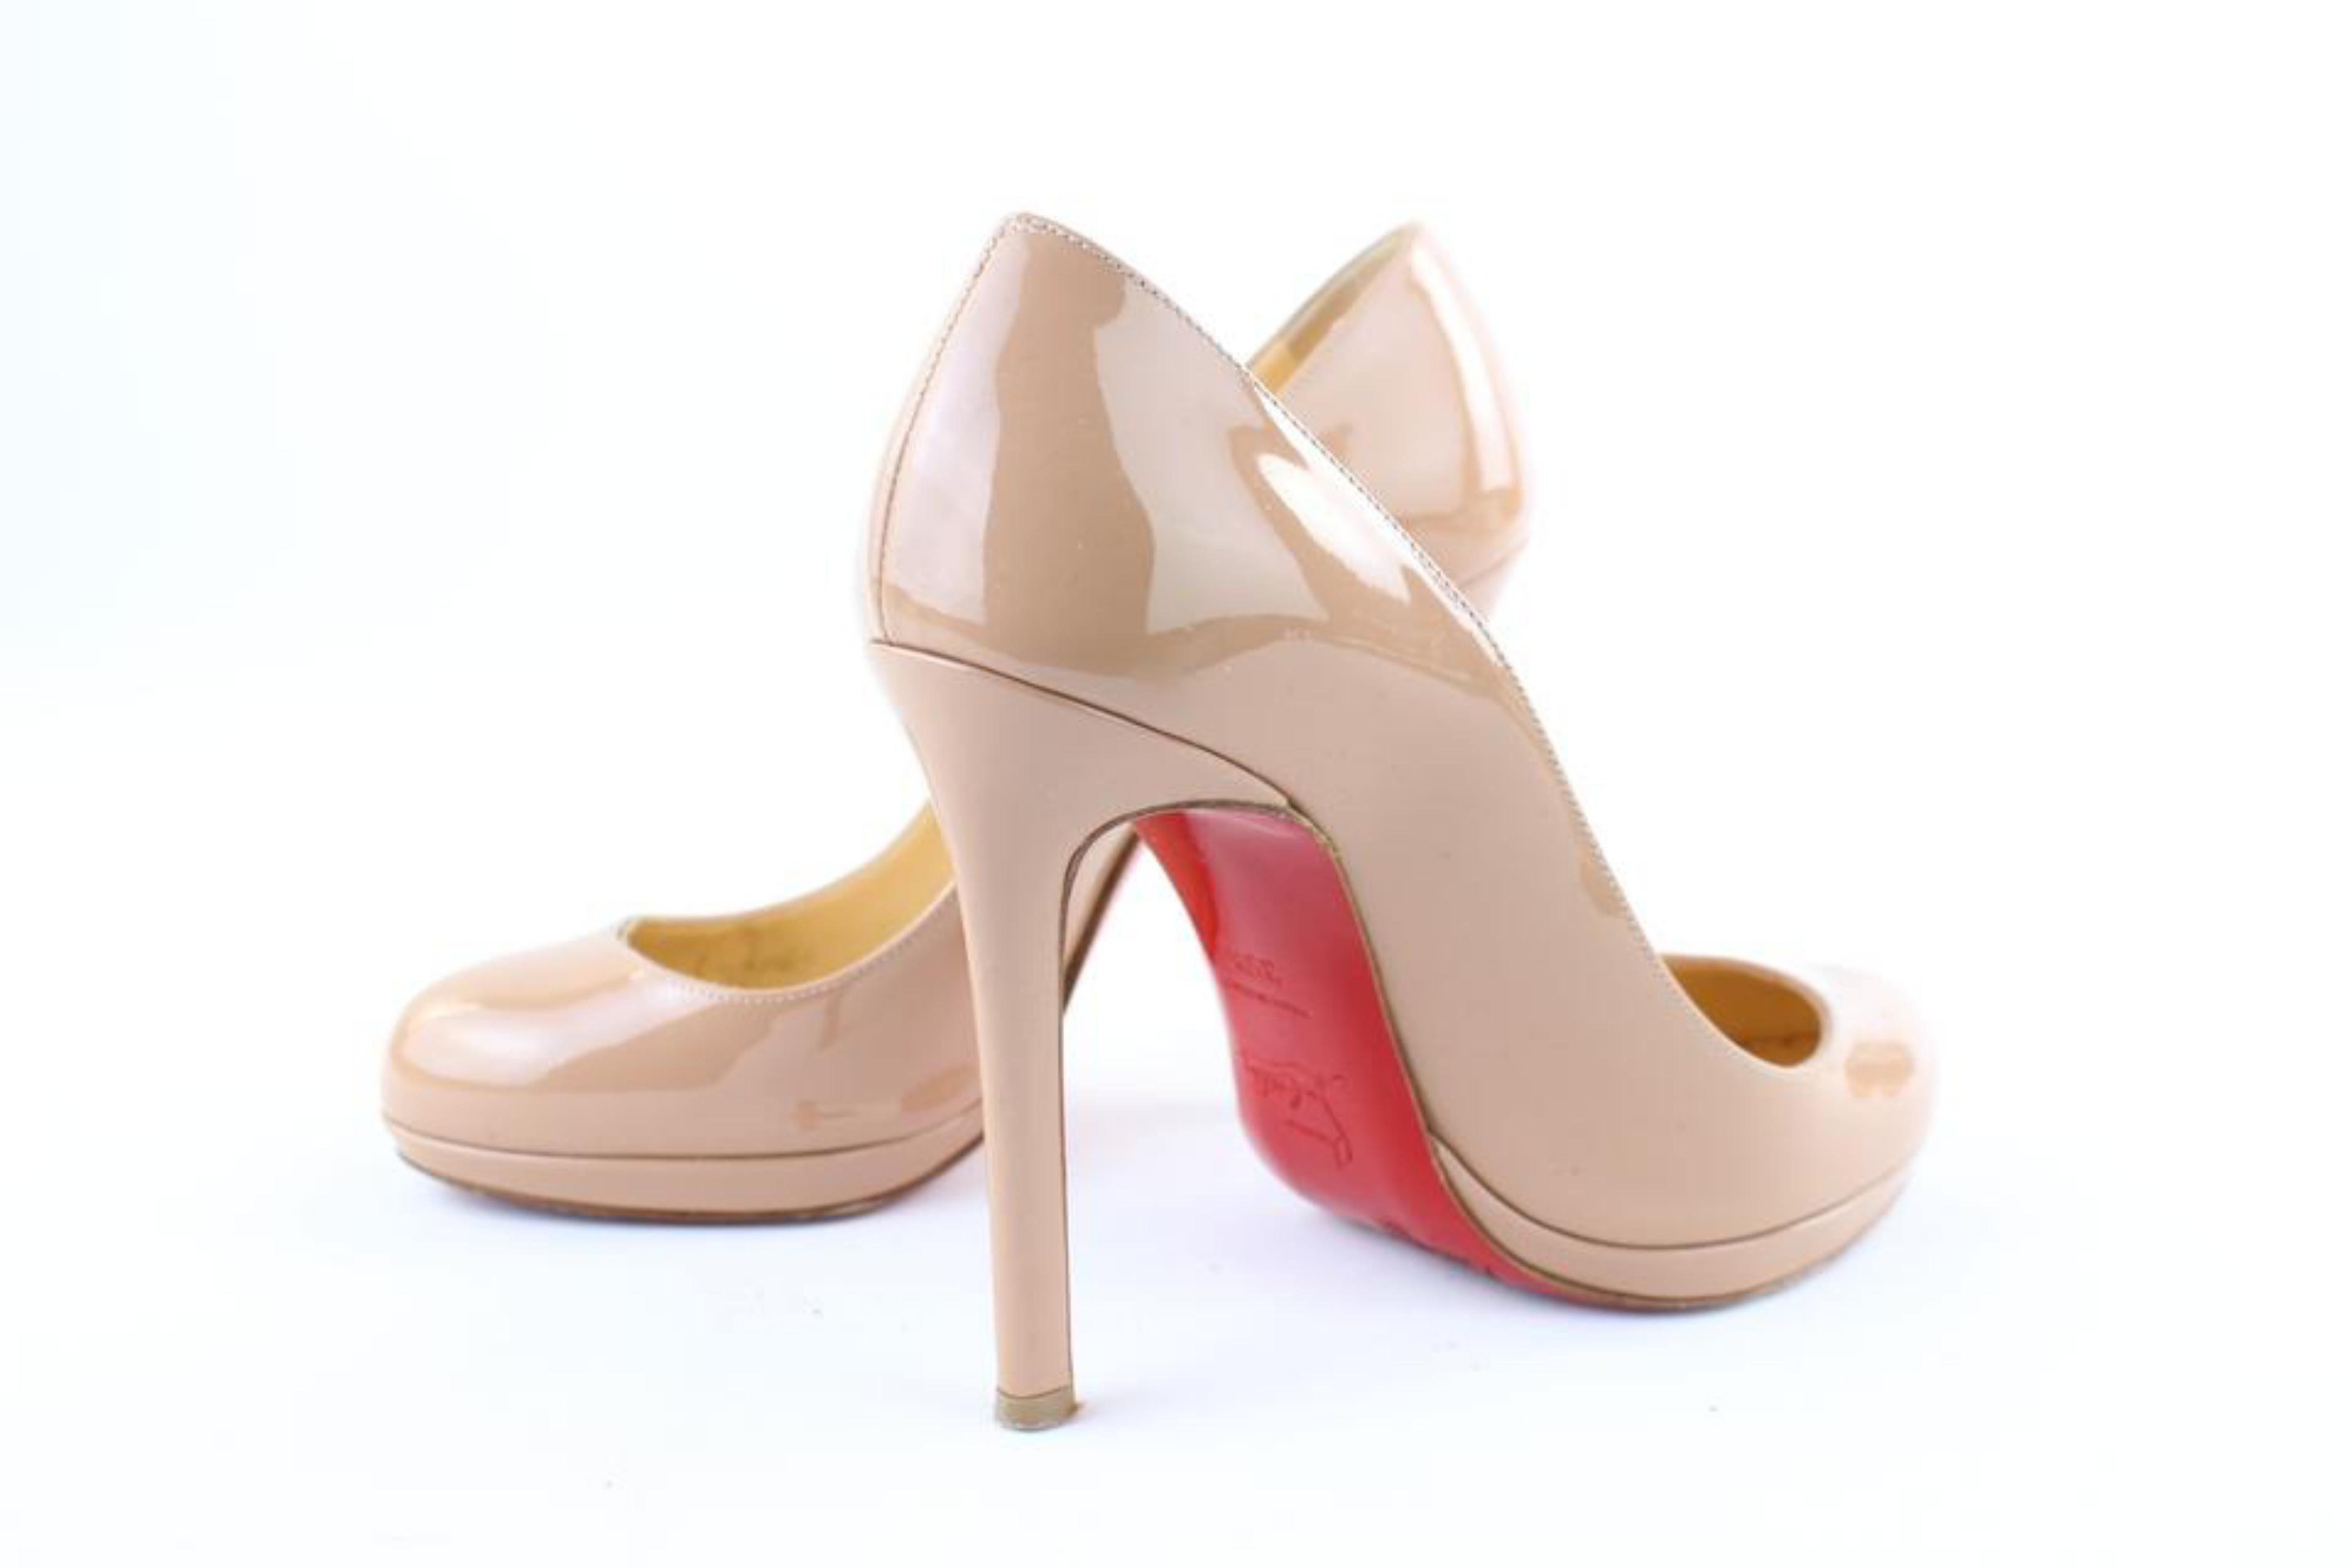 1d10d8c6c791 Christian Louboutin Beige Nude Neofilo 120 3clj1016 Pumps For Sale at  1stdibs